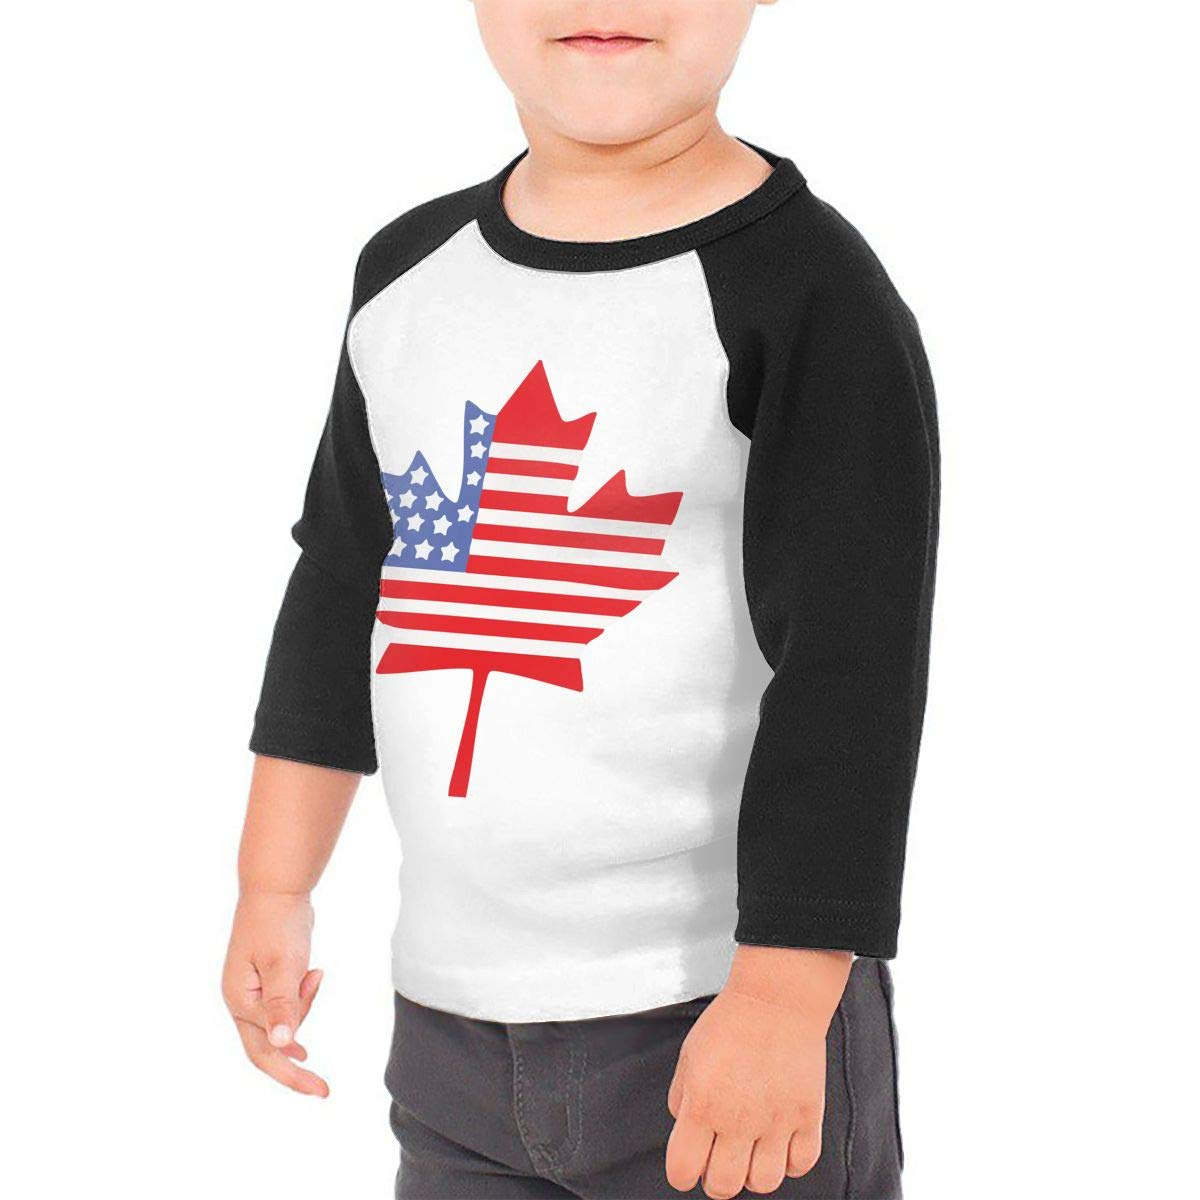 QPKMRTZTX0 Boys Girls Kids /& Toddler Canadian American Flag Long Sleeve Tees 100/% Cotton